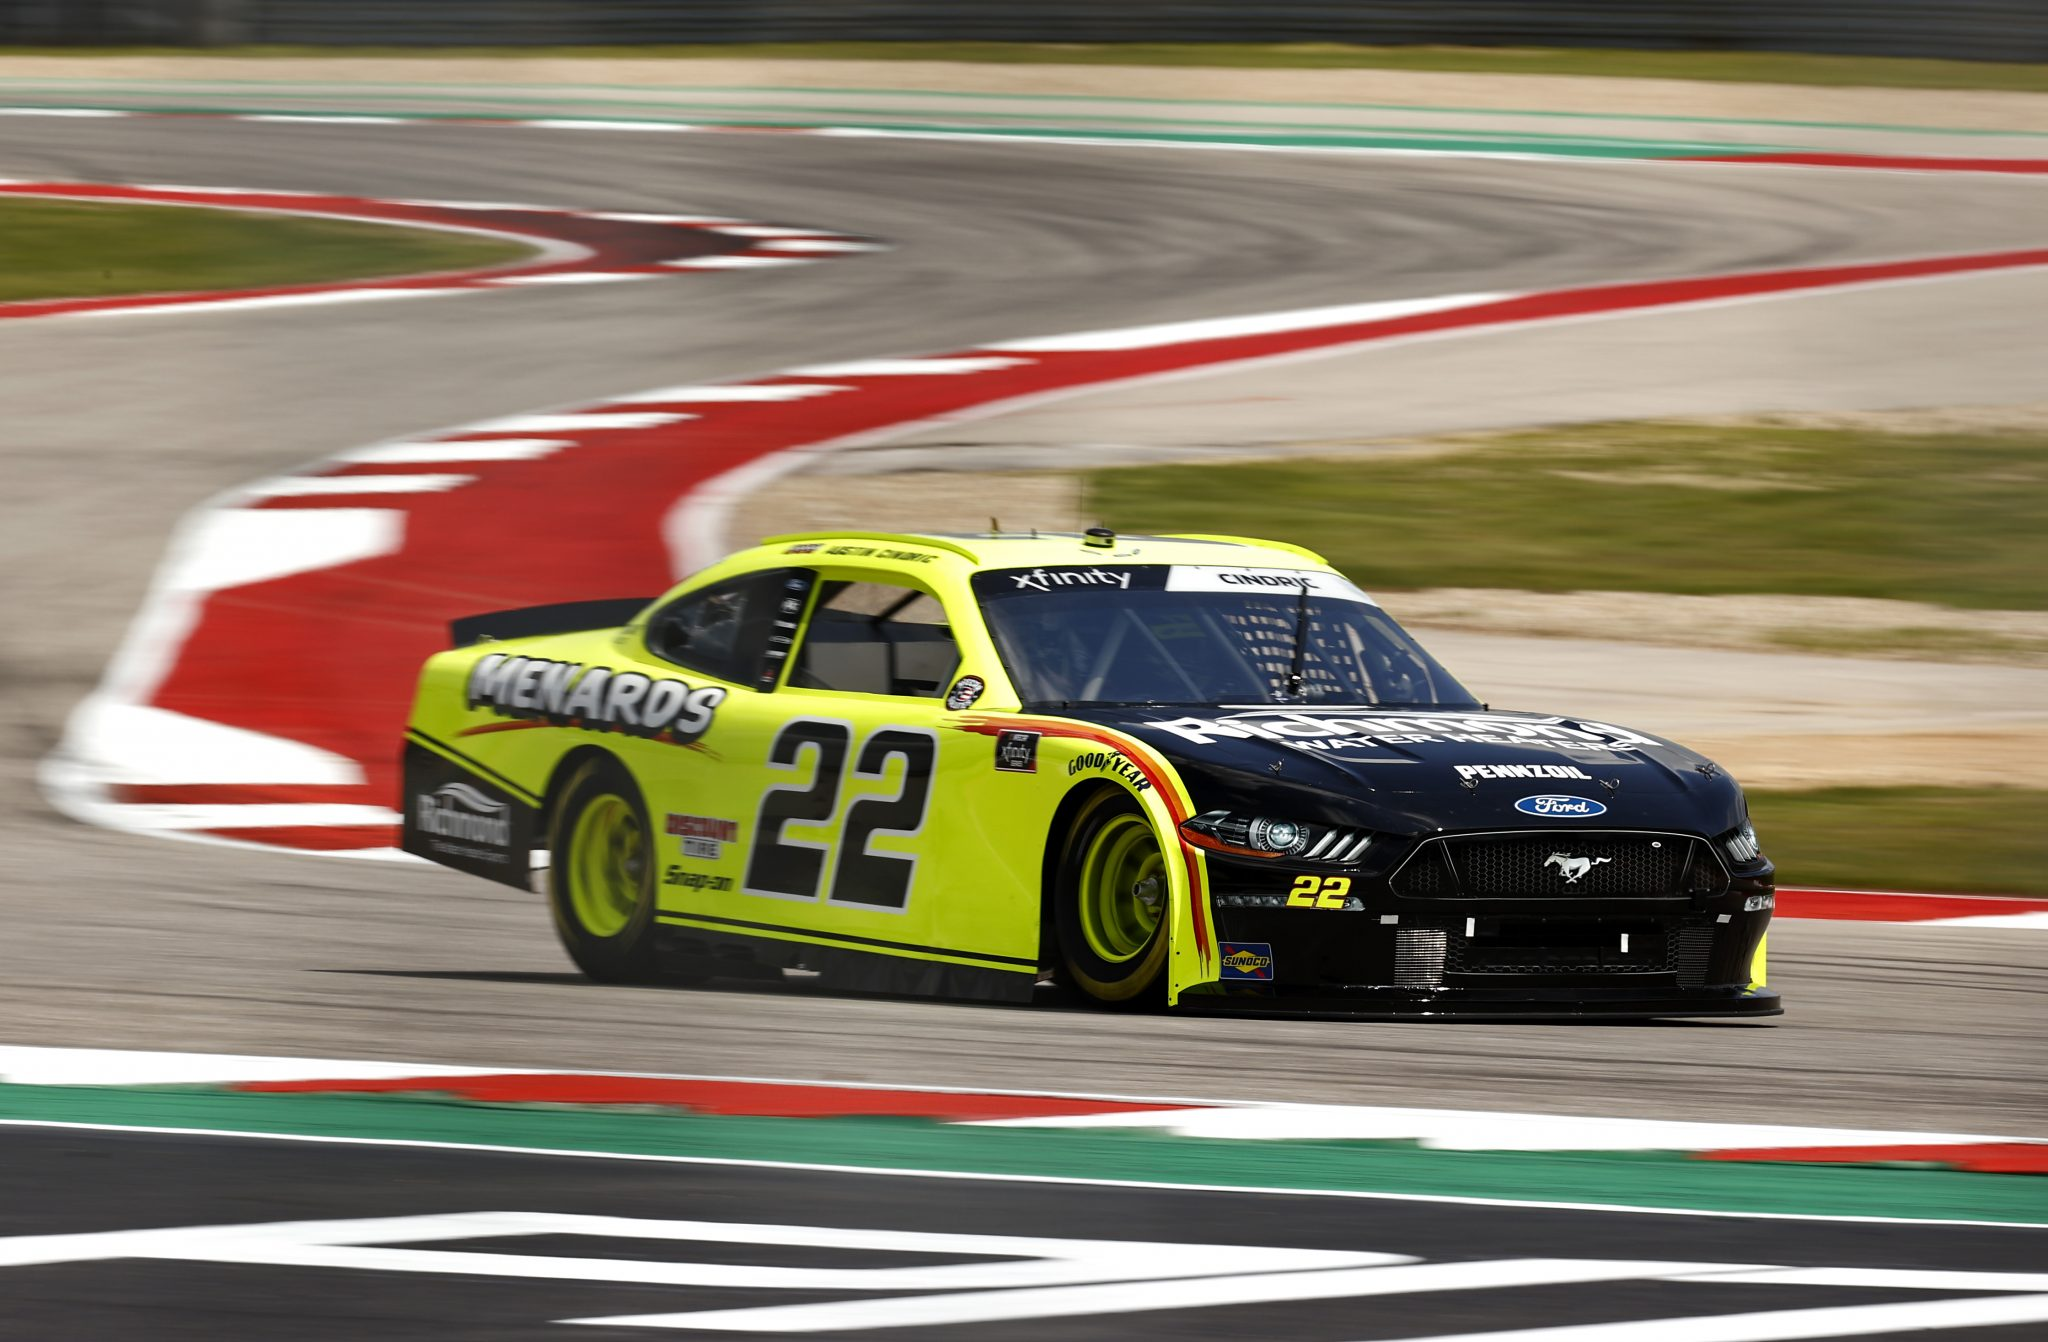 AUSTIN, TEXAS - MAY 21: Austin Cindric, driver of the #22 Menards/Richmond Ford, drives during practice for the NASCAR Xfinity Series Pit Boss 250 at Circuit of The Americas on May 21, 2021 in Austin, Texas. (Photo by Jared C. Tilton/Getty Images) | Getty Images